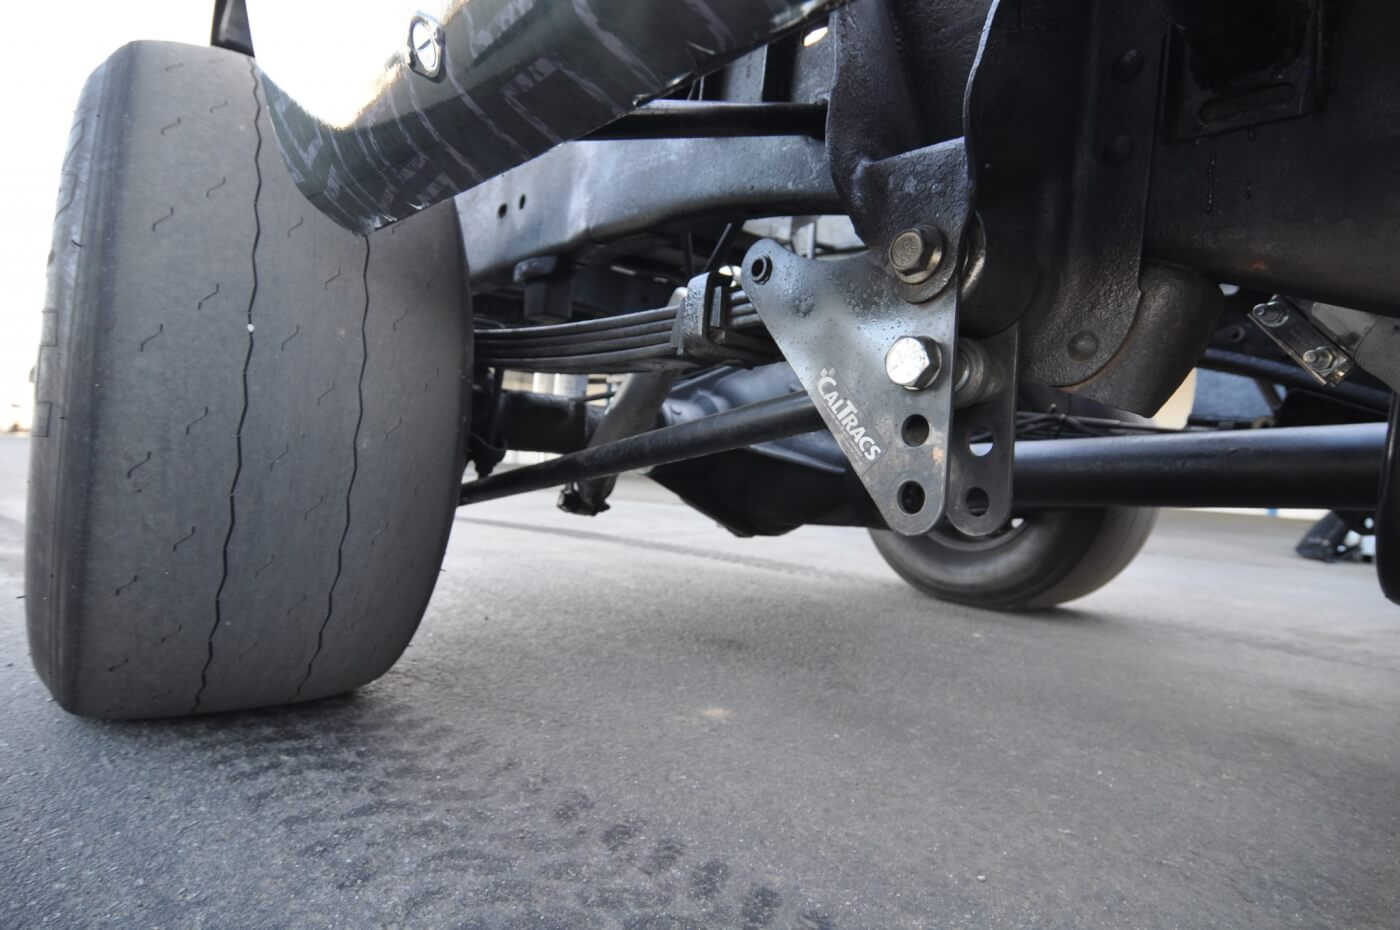 CalTracs traction bars are essential to reducing axle wrap and increasing traction. Of course, the race slicks are a big part of the traction equation too.